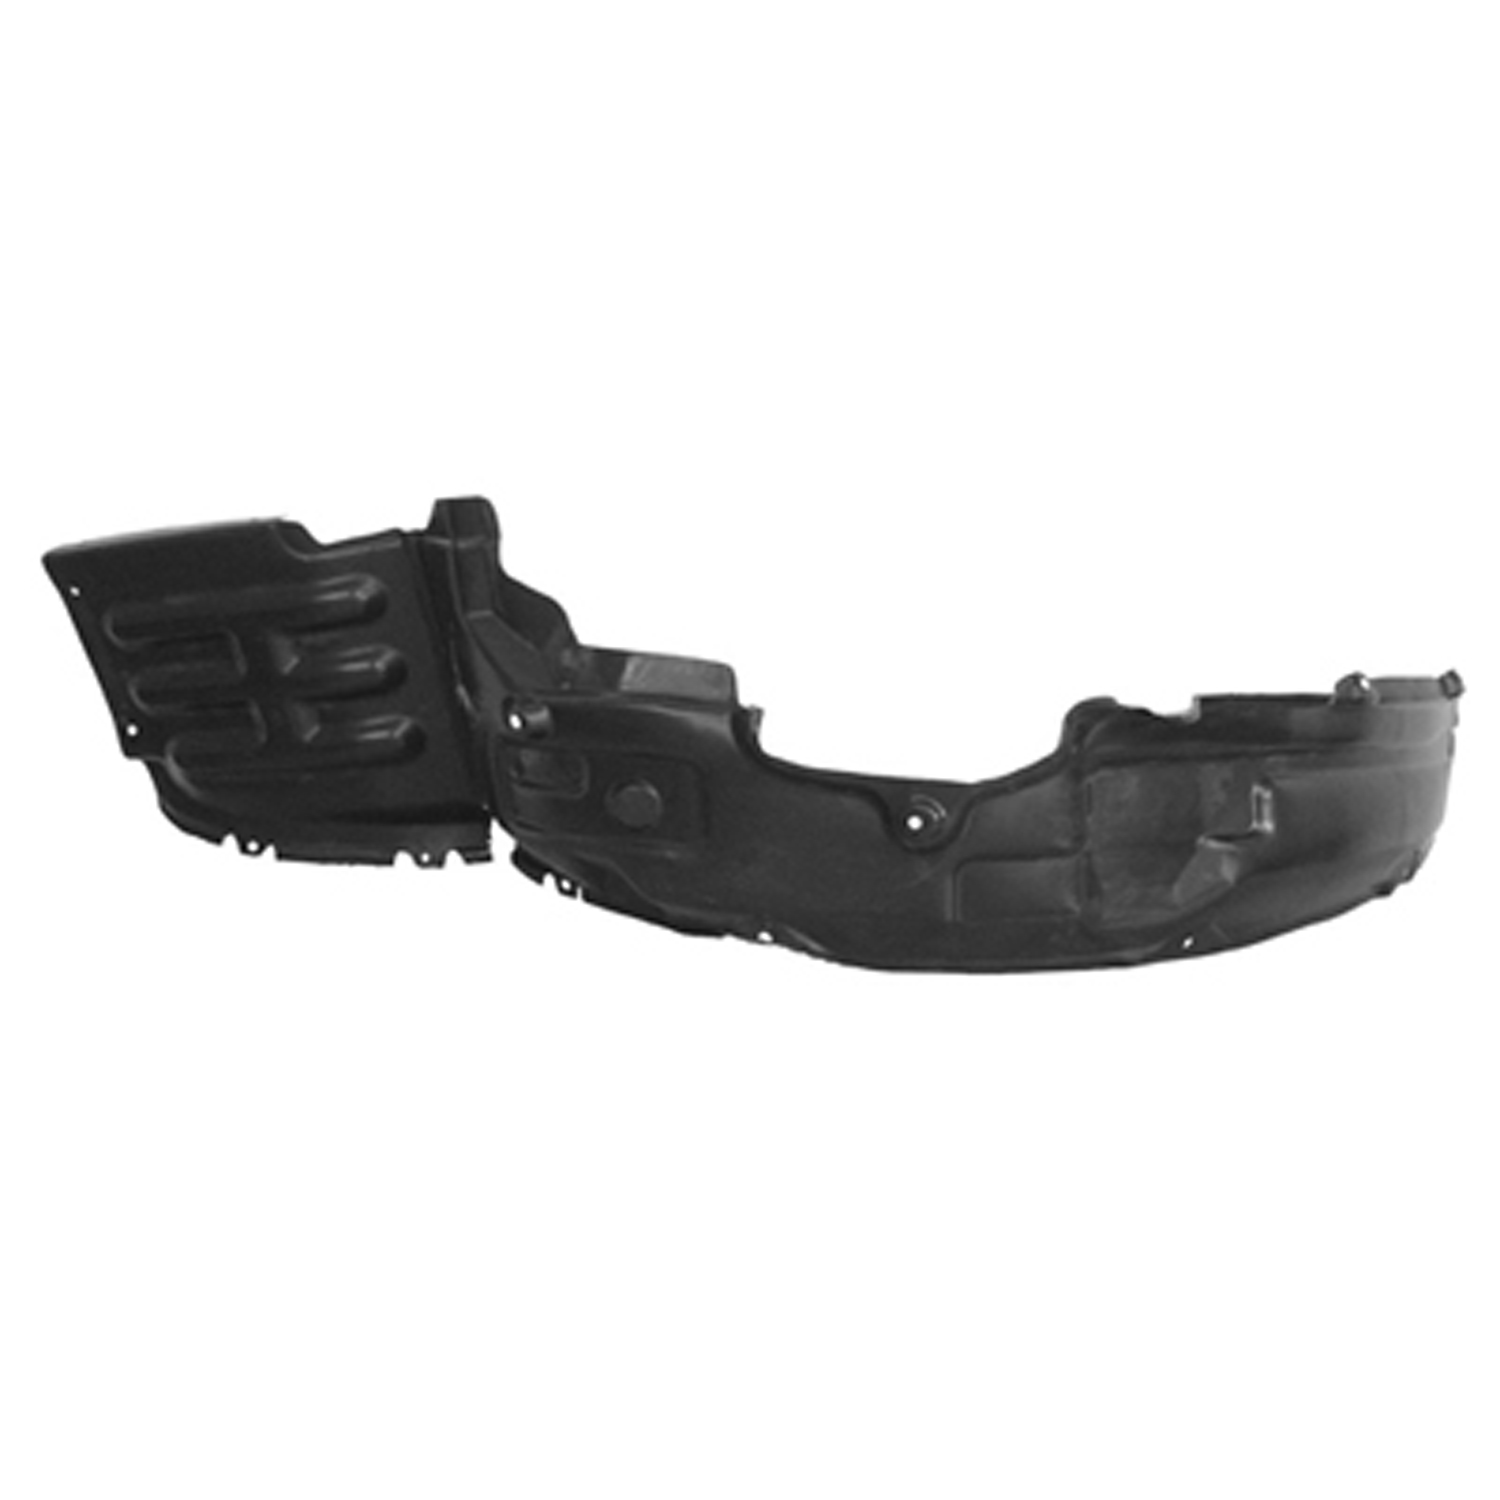 Front Driver Side Inner MI1250107 Replacement Fender for 06-08 Eclipse